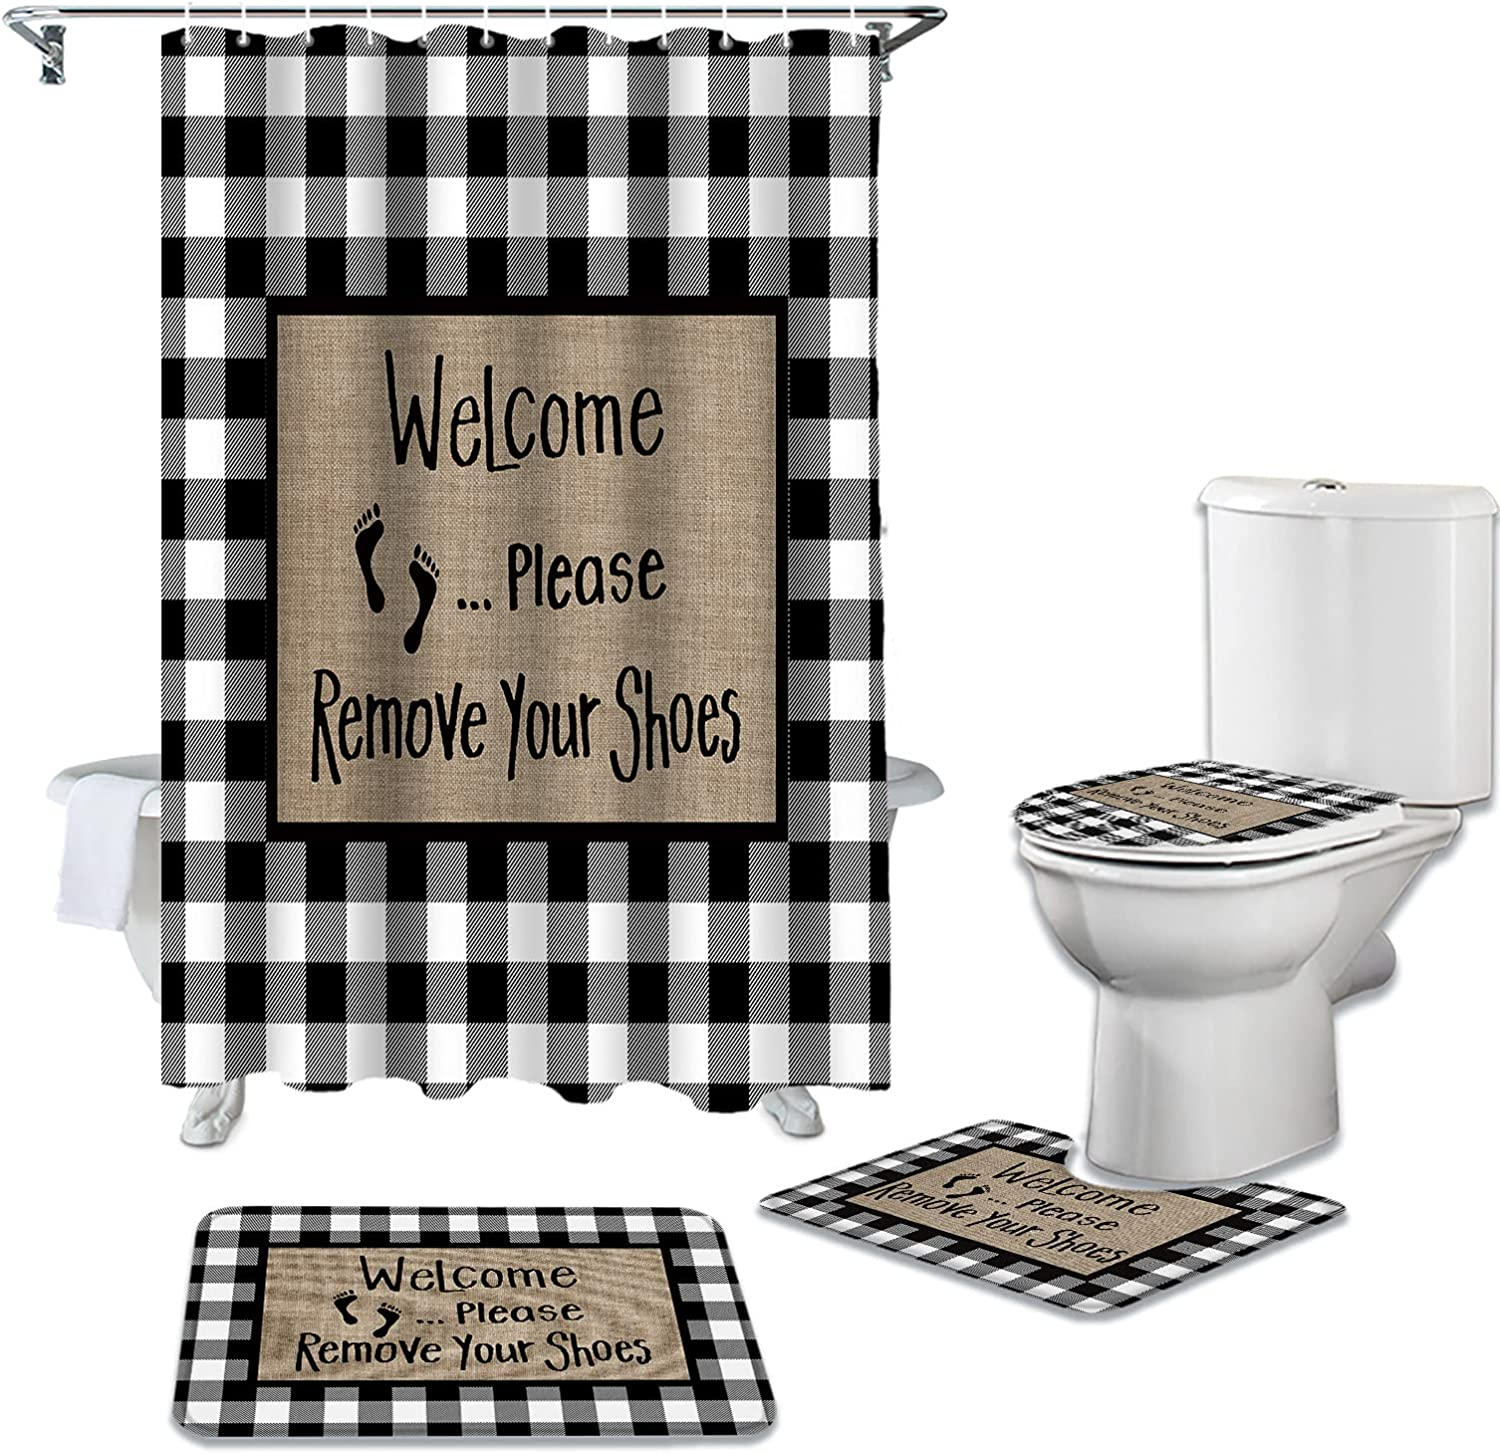 4 Piece Bathroom Mat Sets Product Welcome Blac Shoes Remove Your Popular popular Please